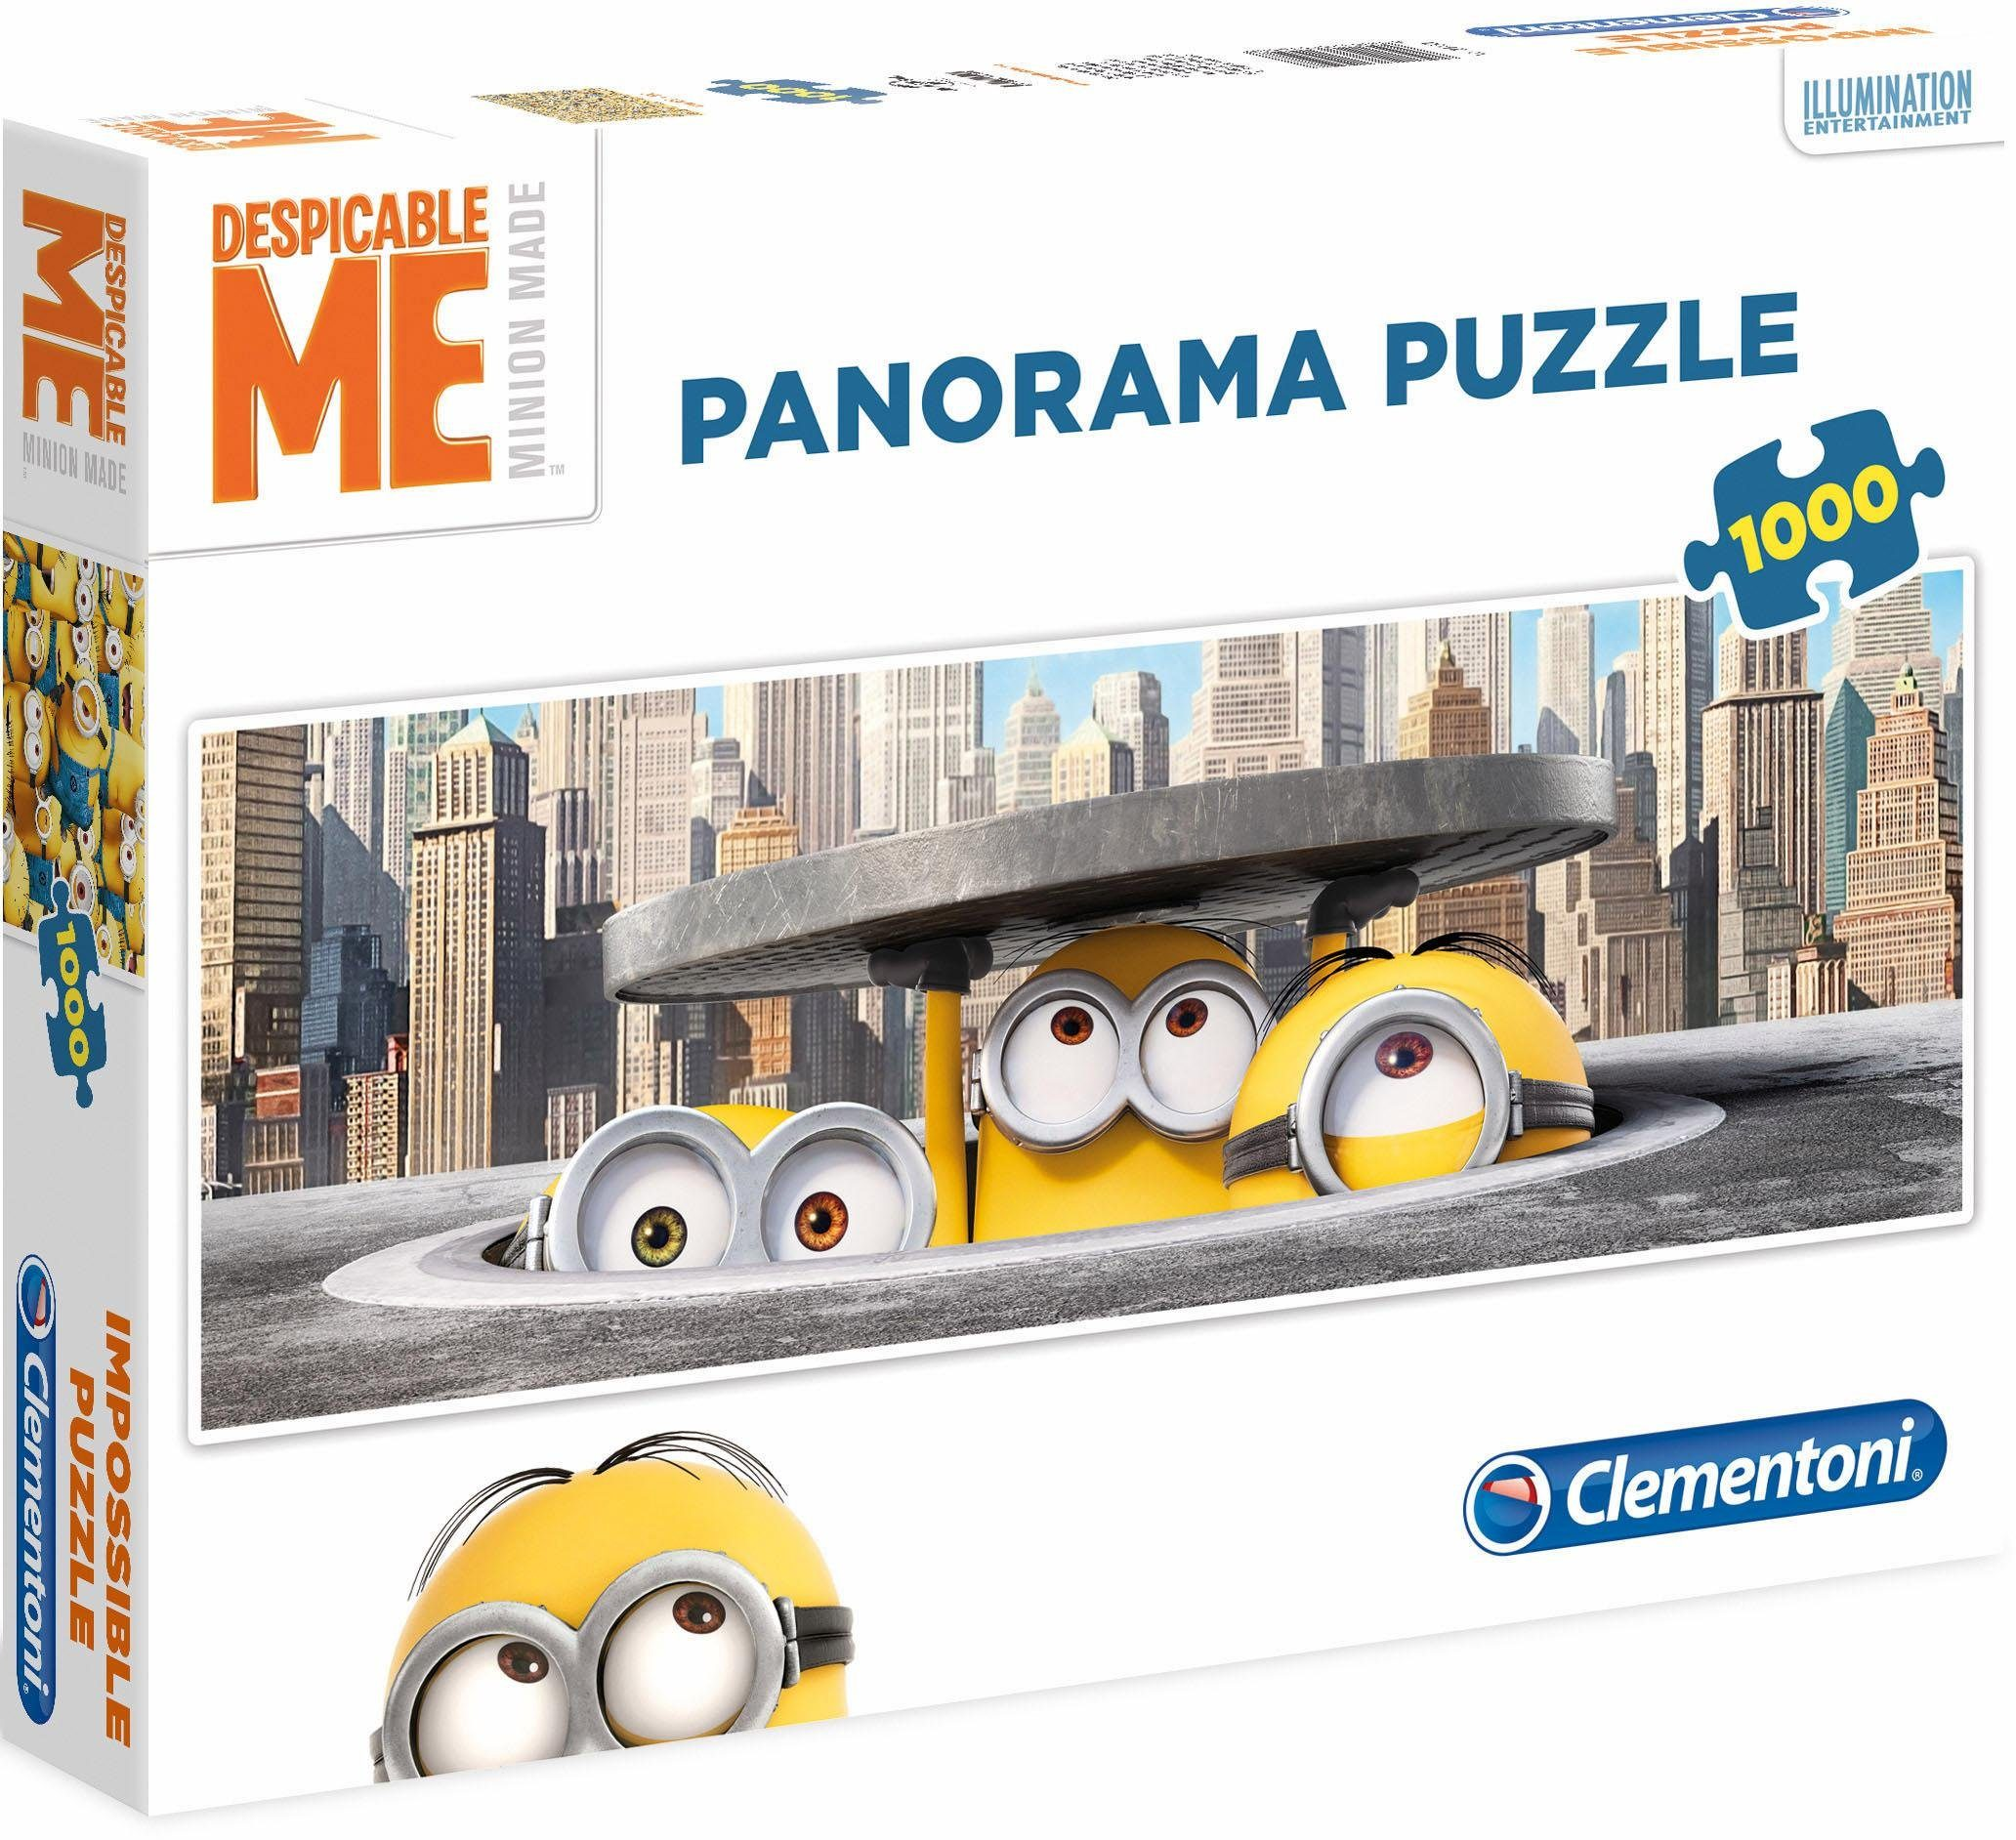 Clementoni Panoramapuzzle, 1000 Teile, »Despicable Me, Minions in New York Panorama«